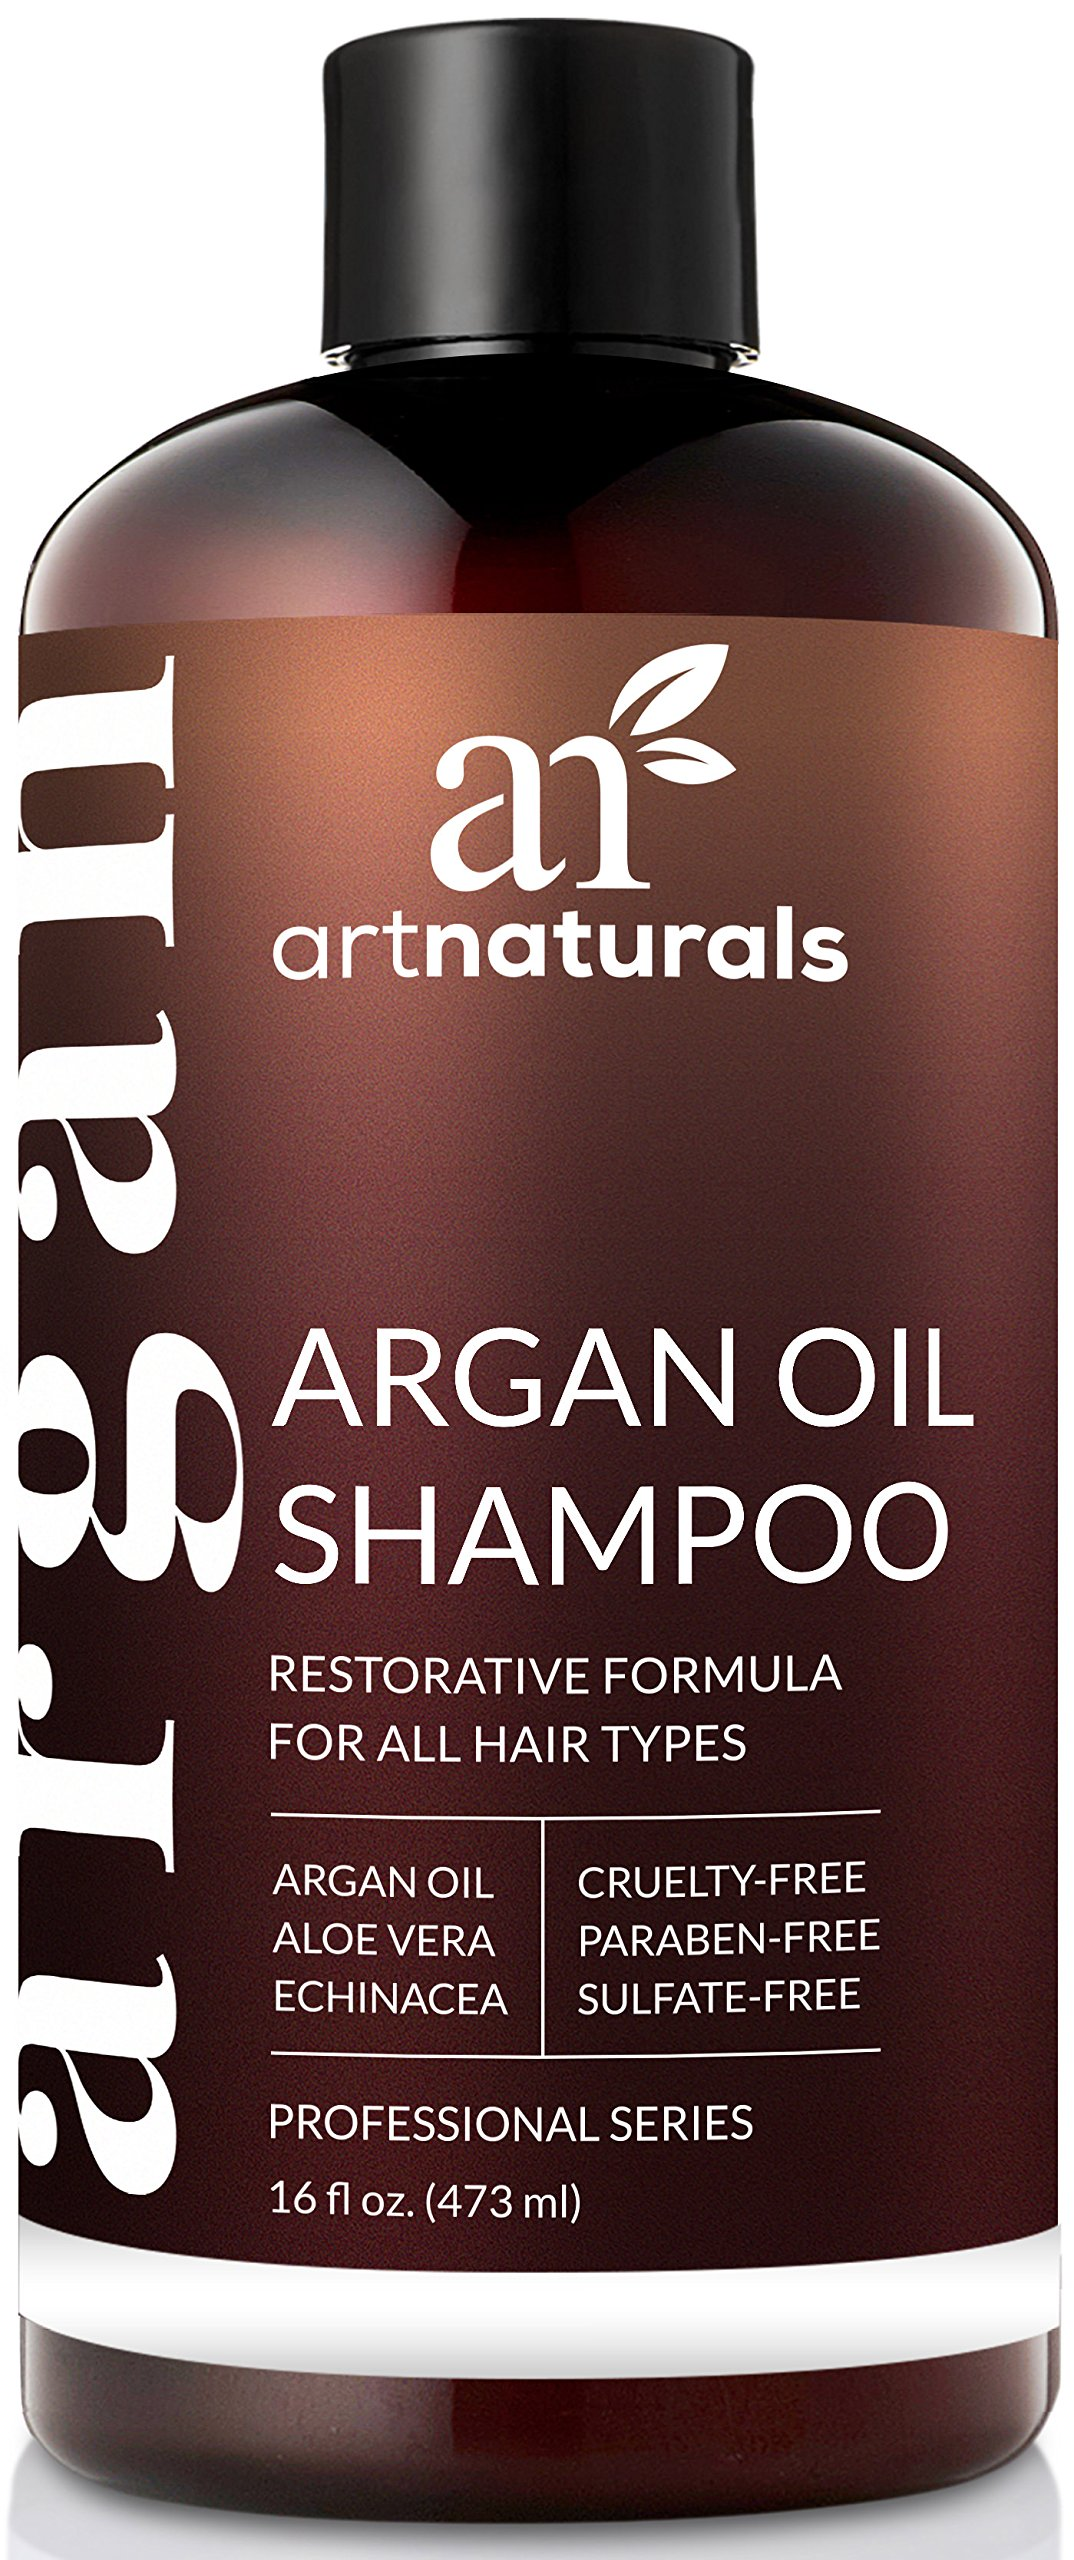 Art Naturals Organic Moroccan Argan-Oil Shampoo - Moisturizing, Volumizing Sulfate Free Shampoo for Women, Men and Teens - Used for Colored and all Hair Types, Anti-Aging Hair Care, 16 Ounce Bottle by ArtNaturals (Image #9)